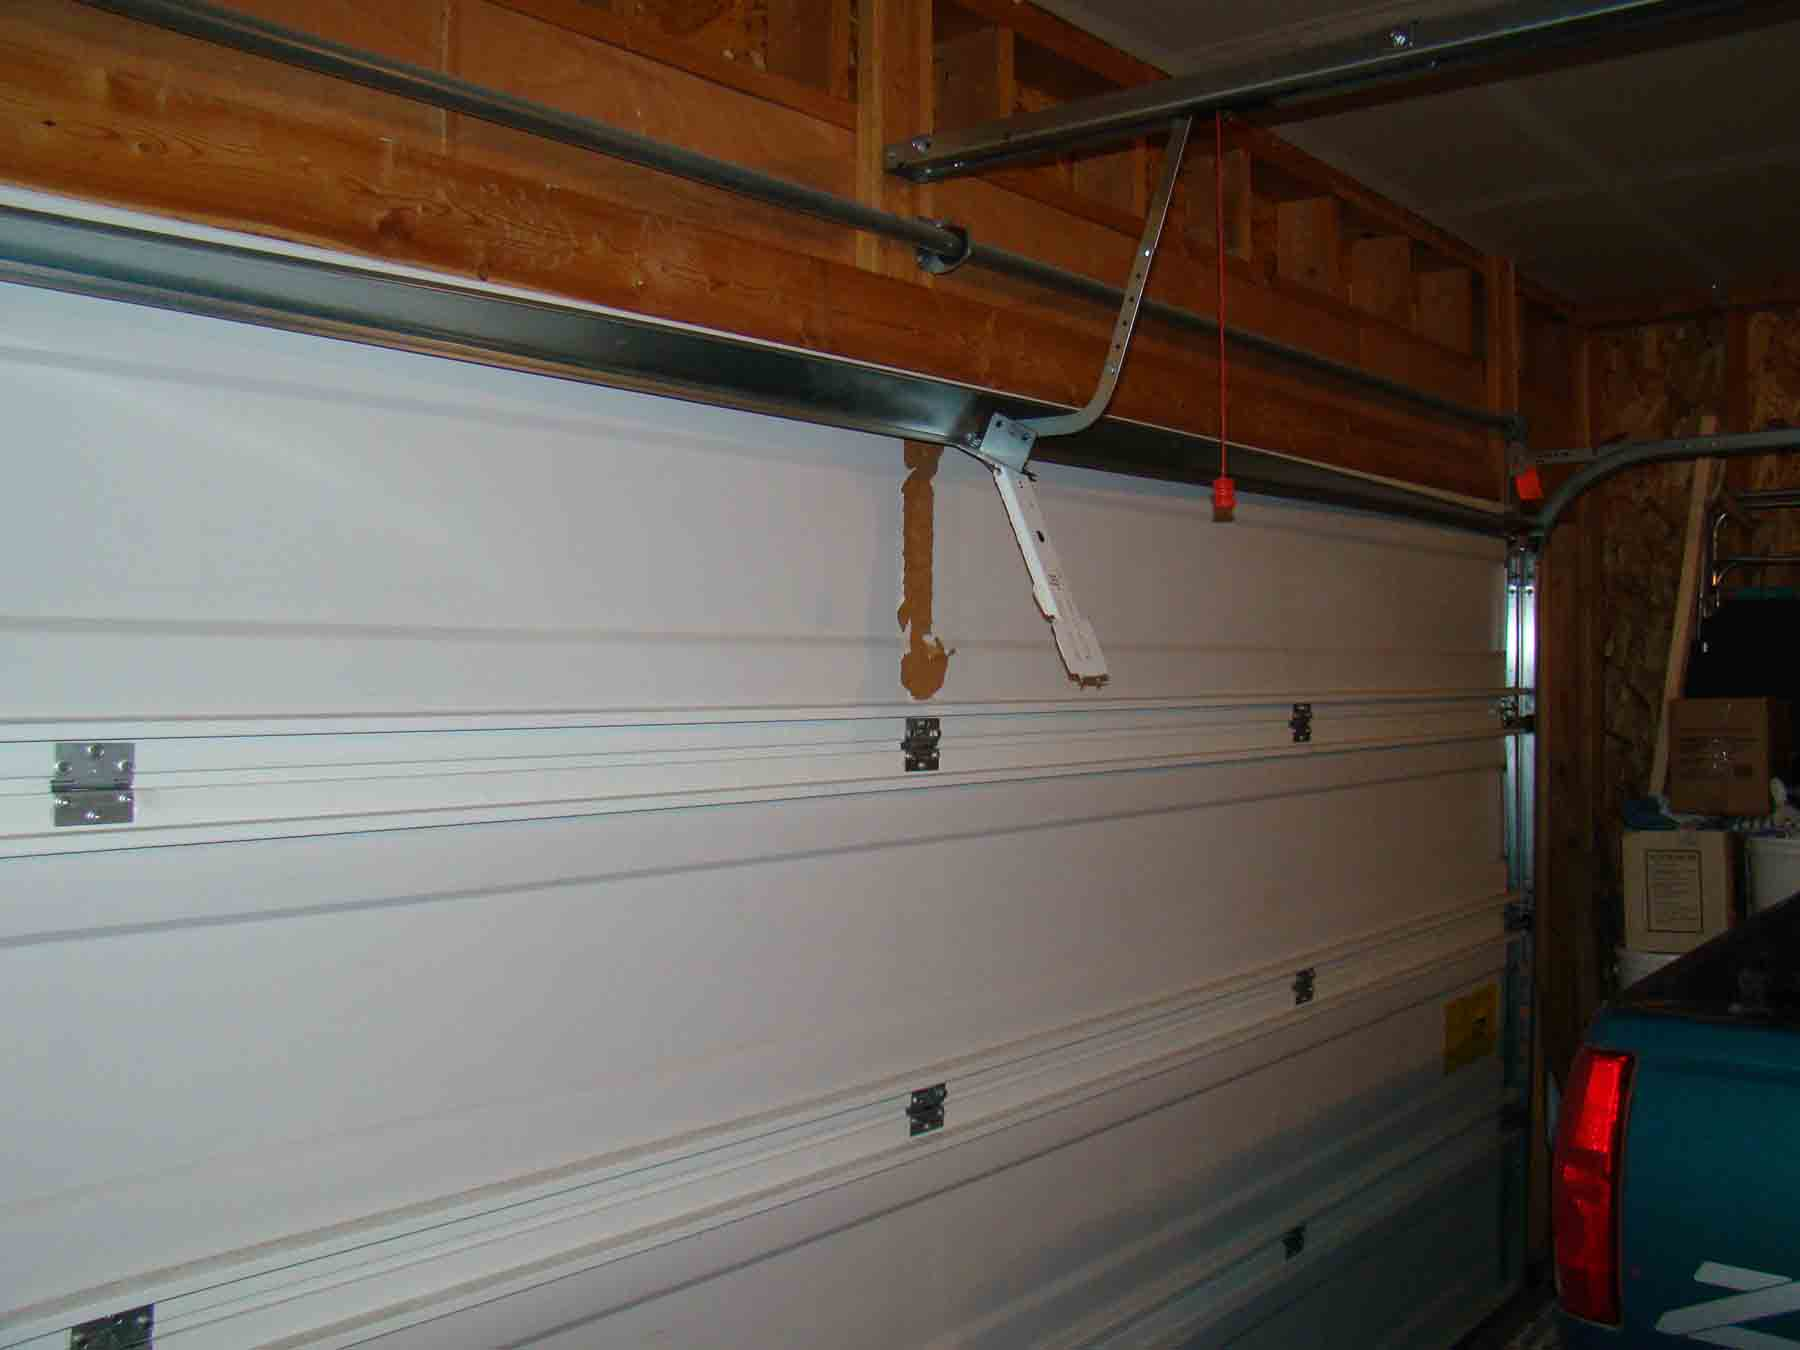 Garage Door Opener Ripped From Door  Building  Construction  DIY Chatroom Home Improvement Forum